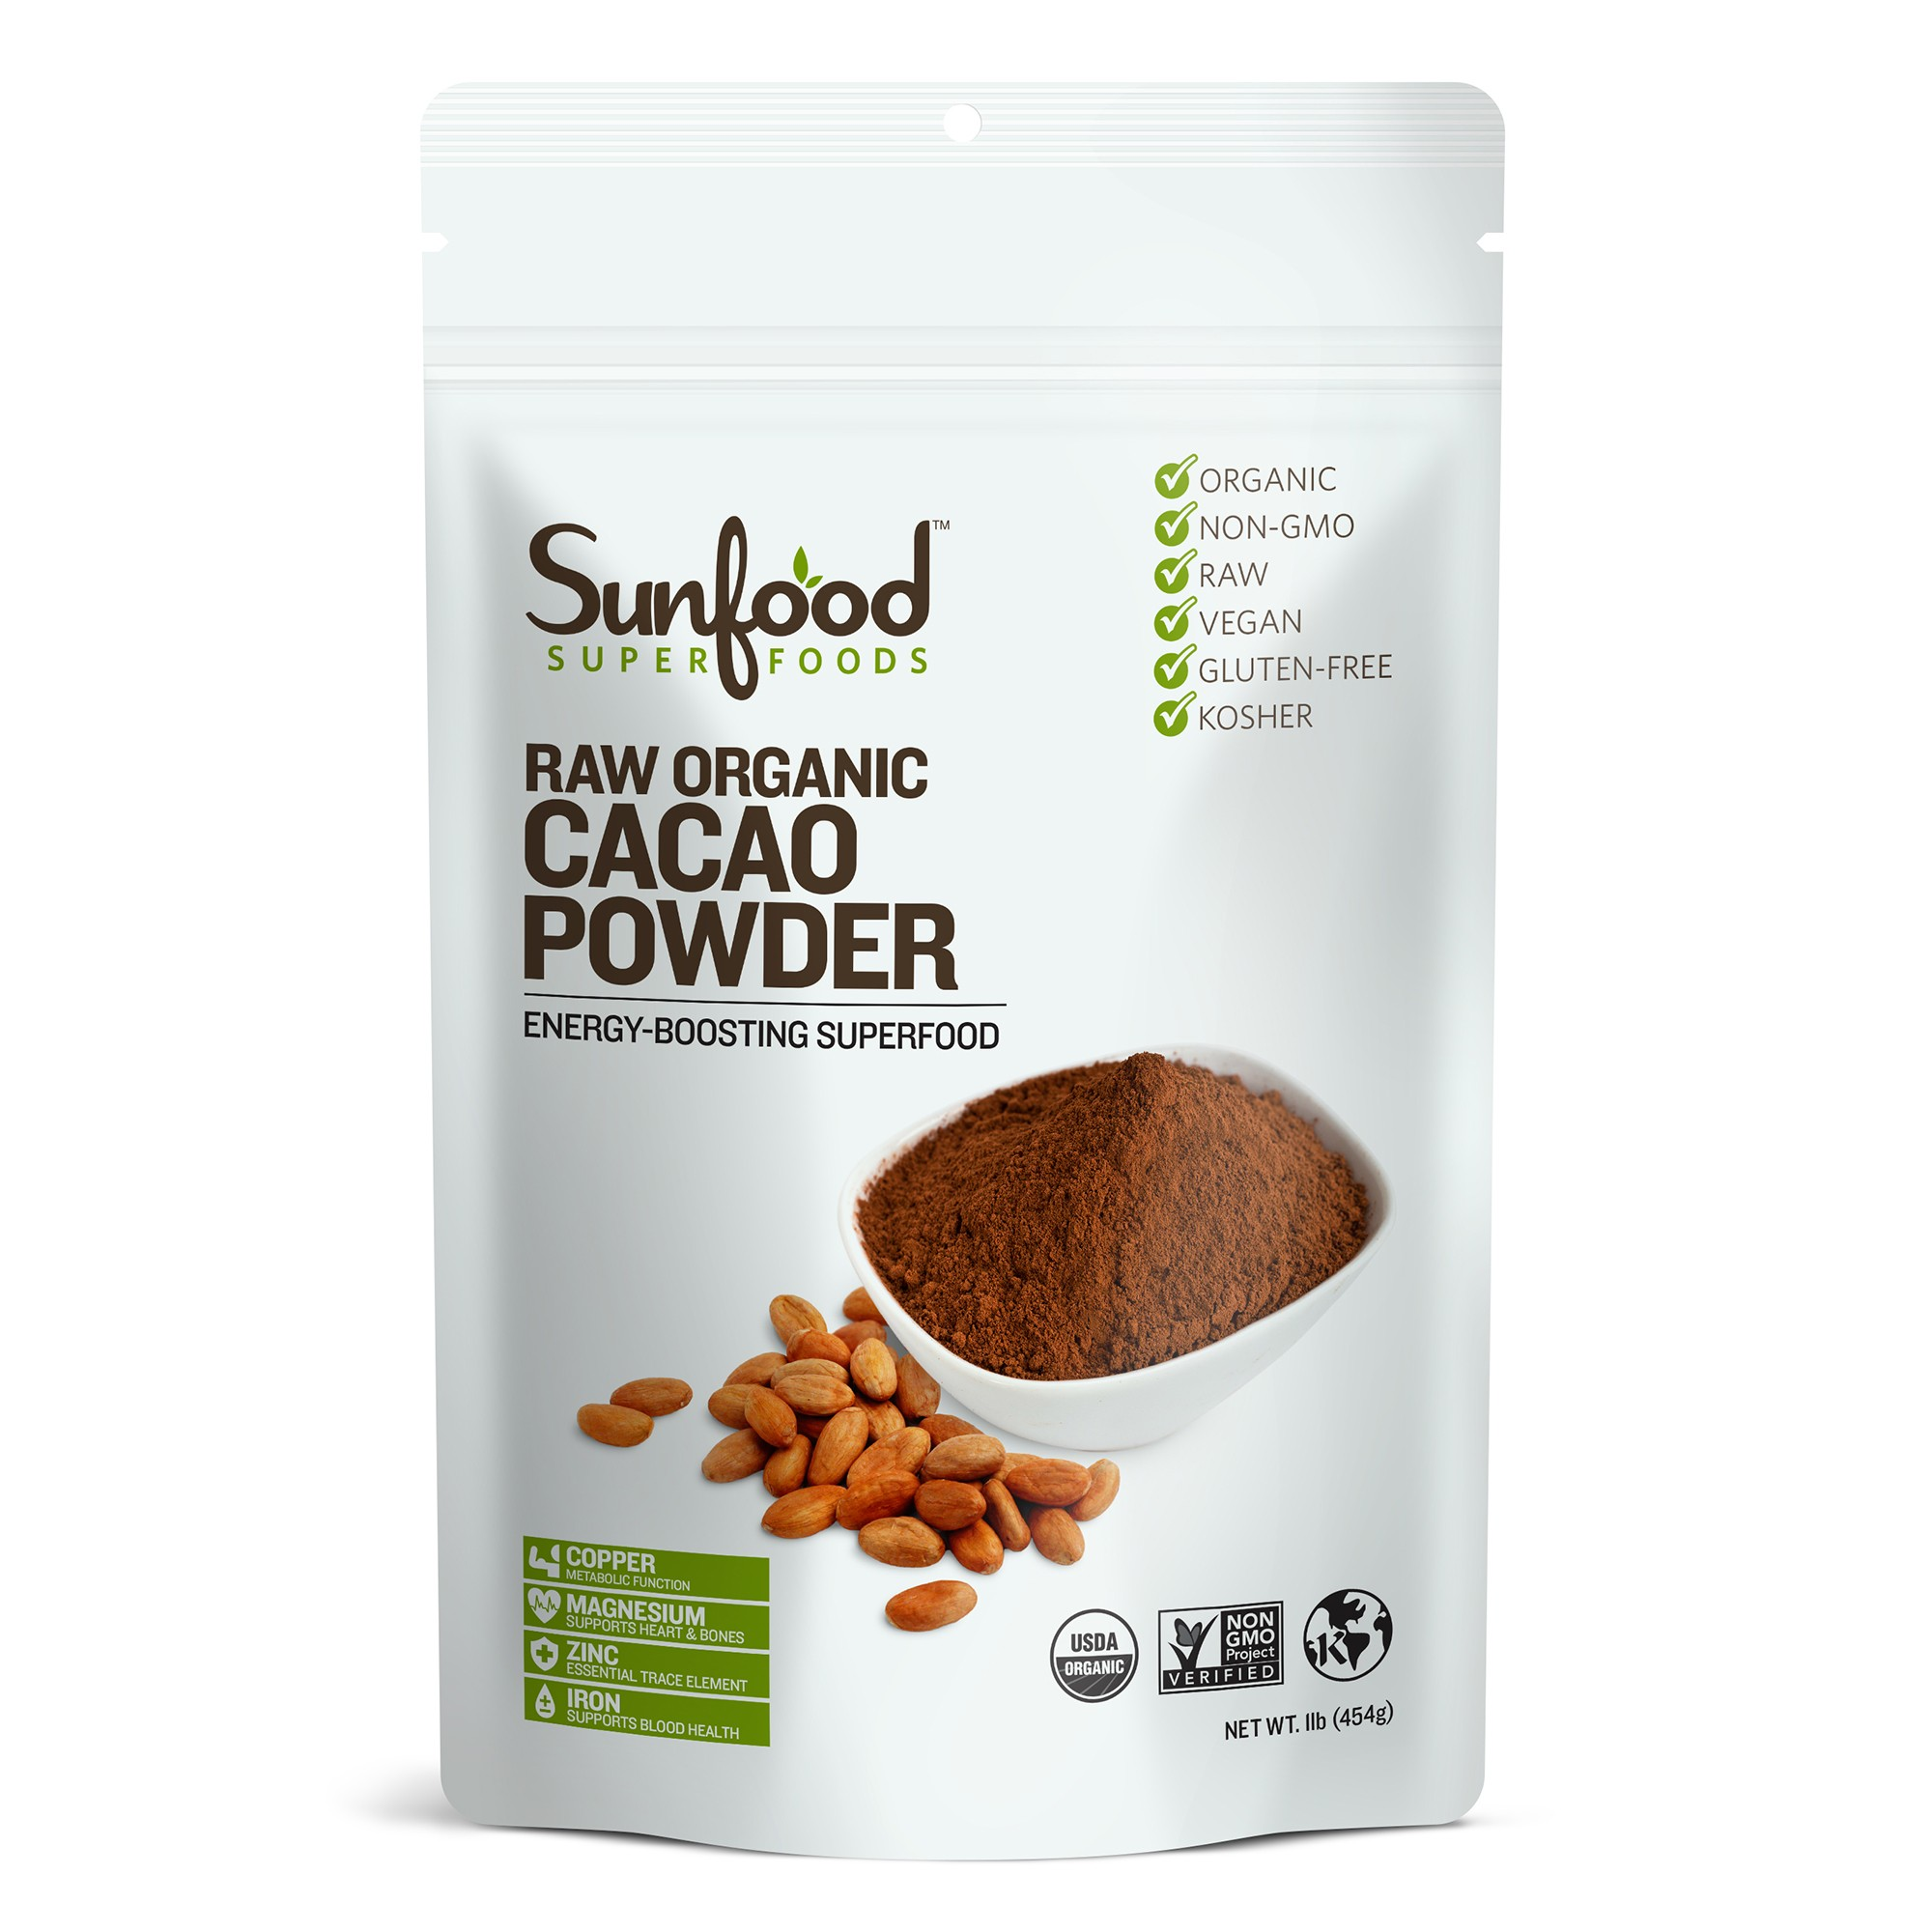 Raw organic cacao powder Sunfood 227g